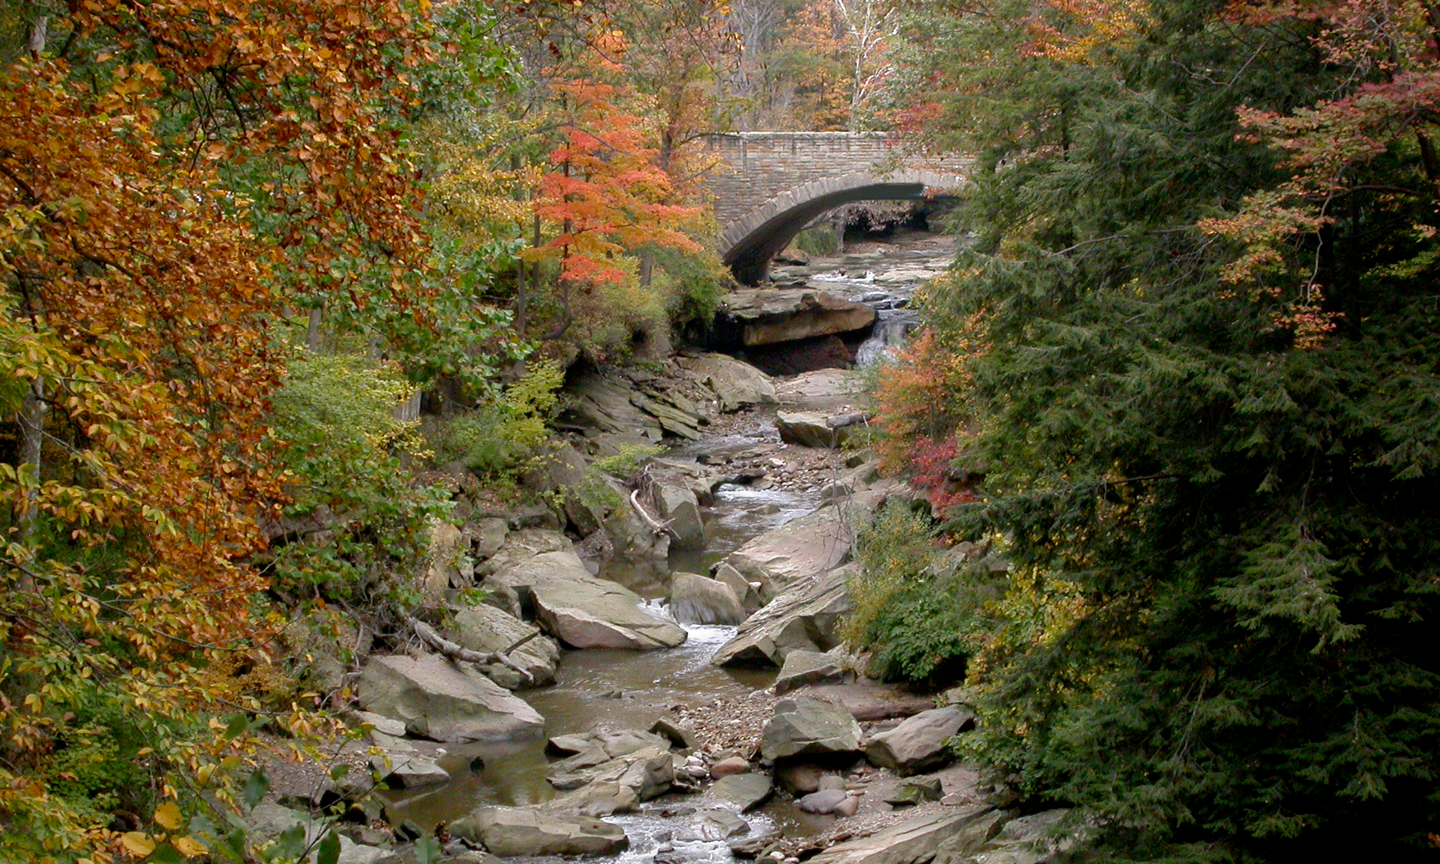 Chippewa Creek Gorge Scenic Overlook